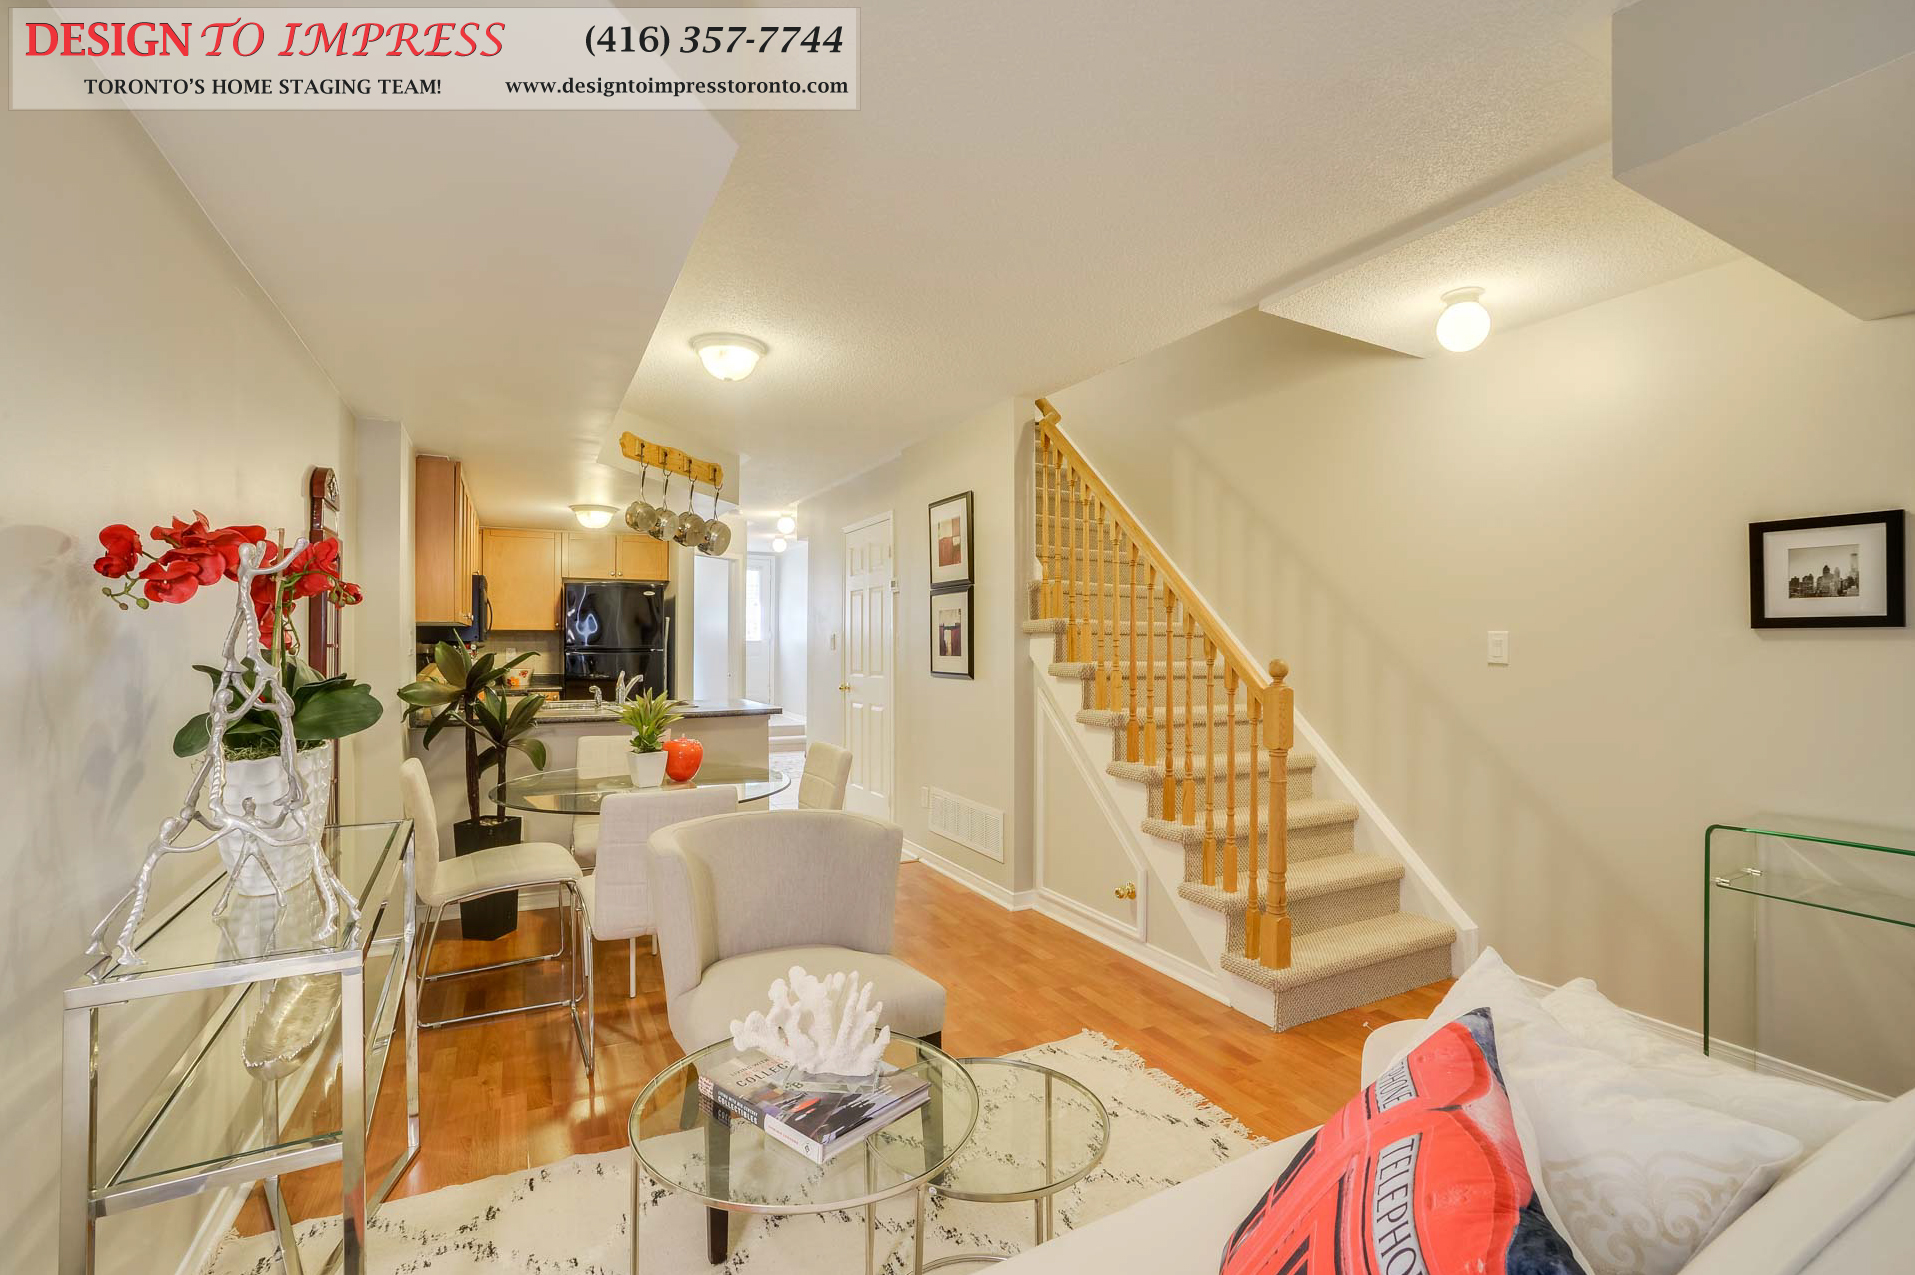 Stairway, 31 Foundry, Toronto Home Staging